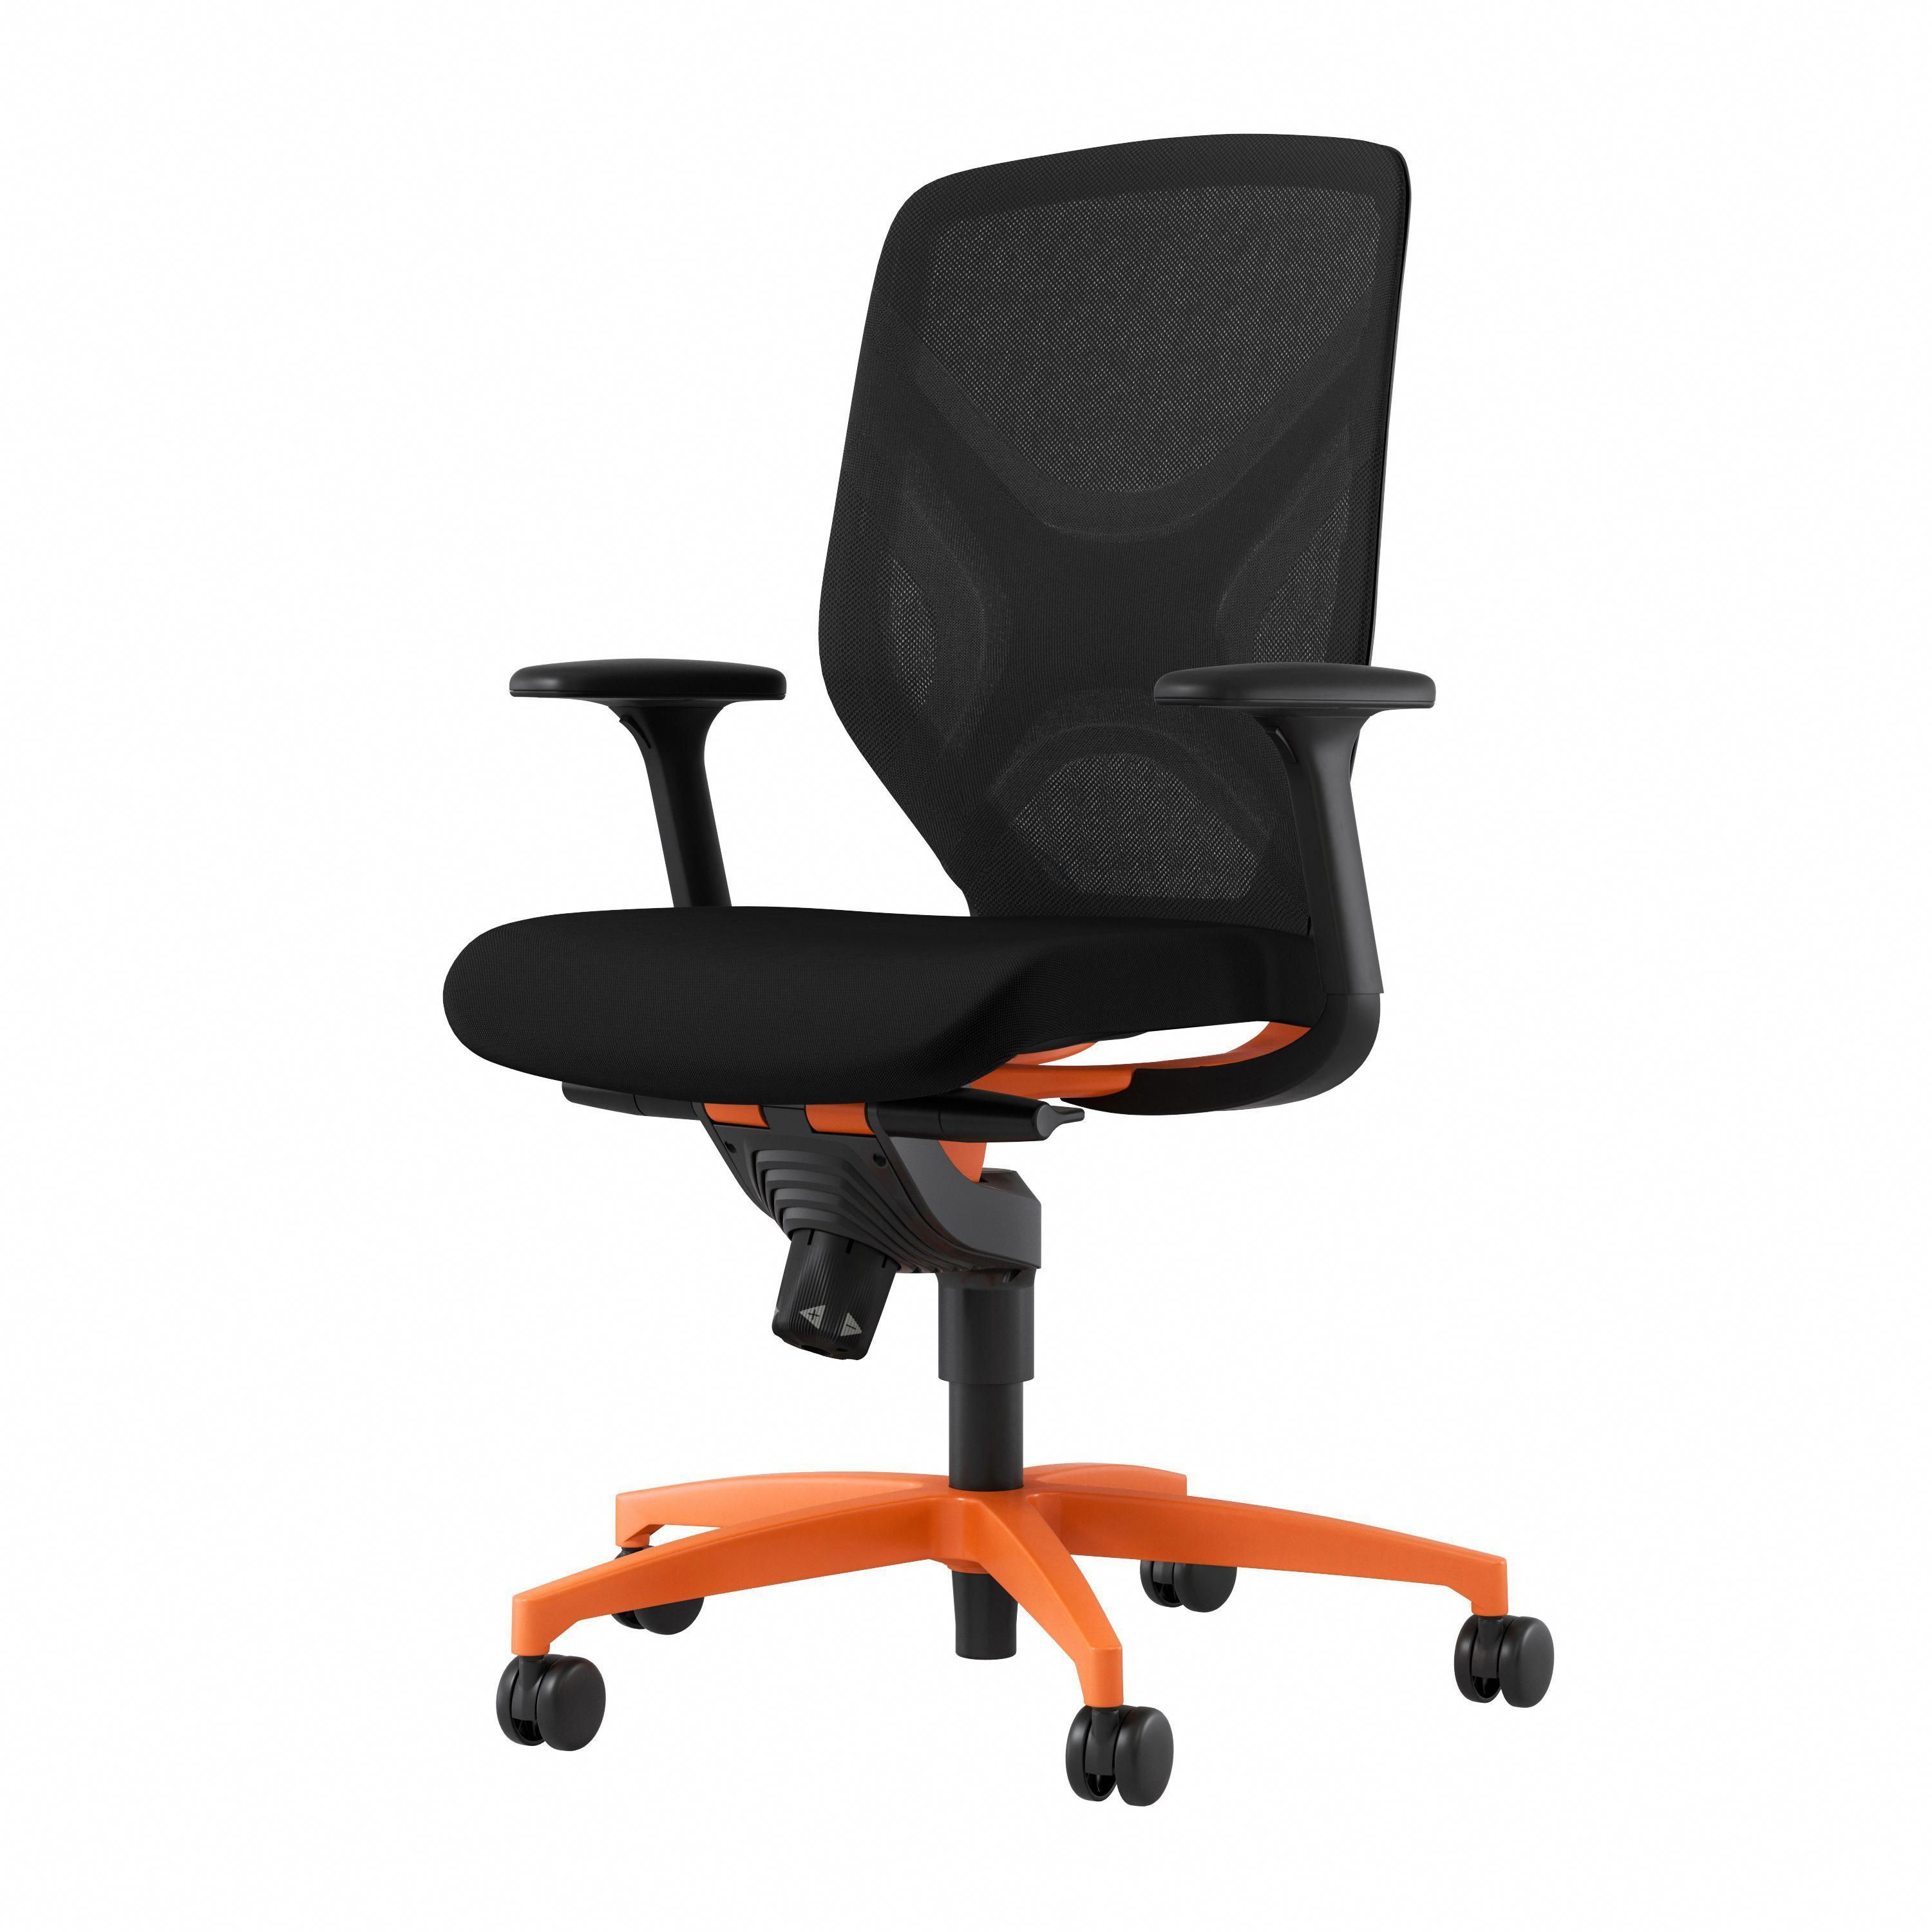 Conference Chair Commercial Furniture Office Furniture Leather Chassis Ergonomic Chair Swivel Chair Minimalist Modern Office Furniture